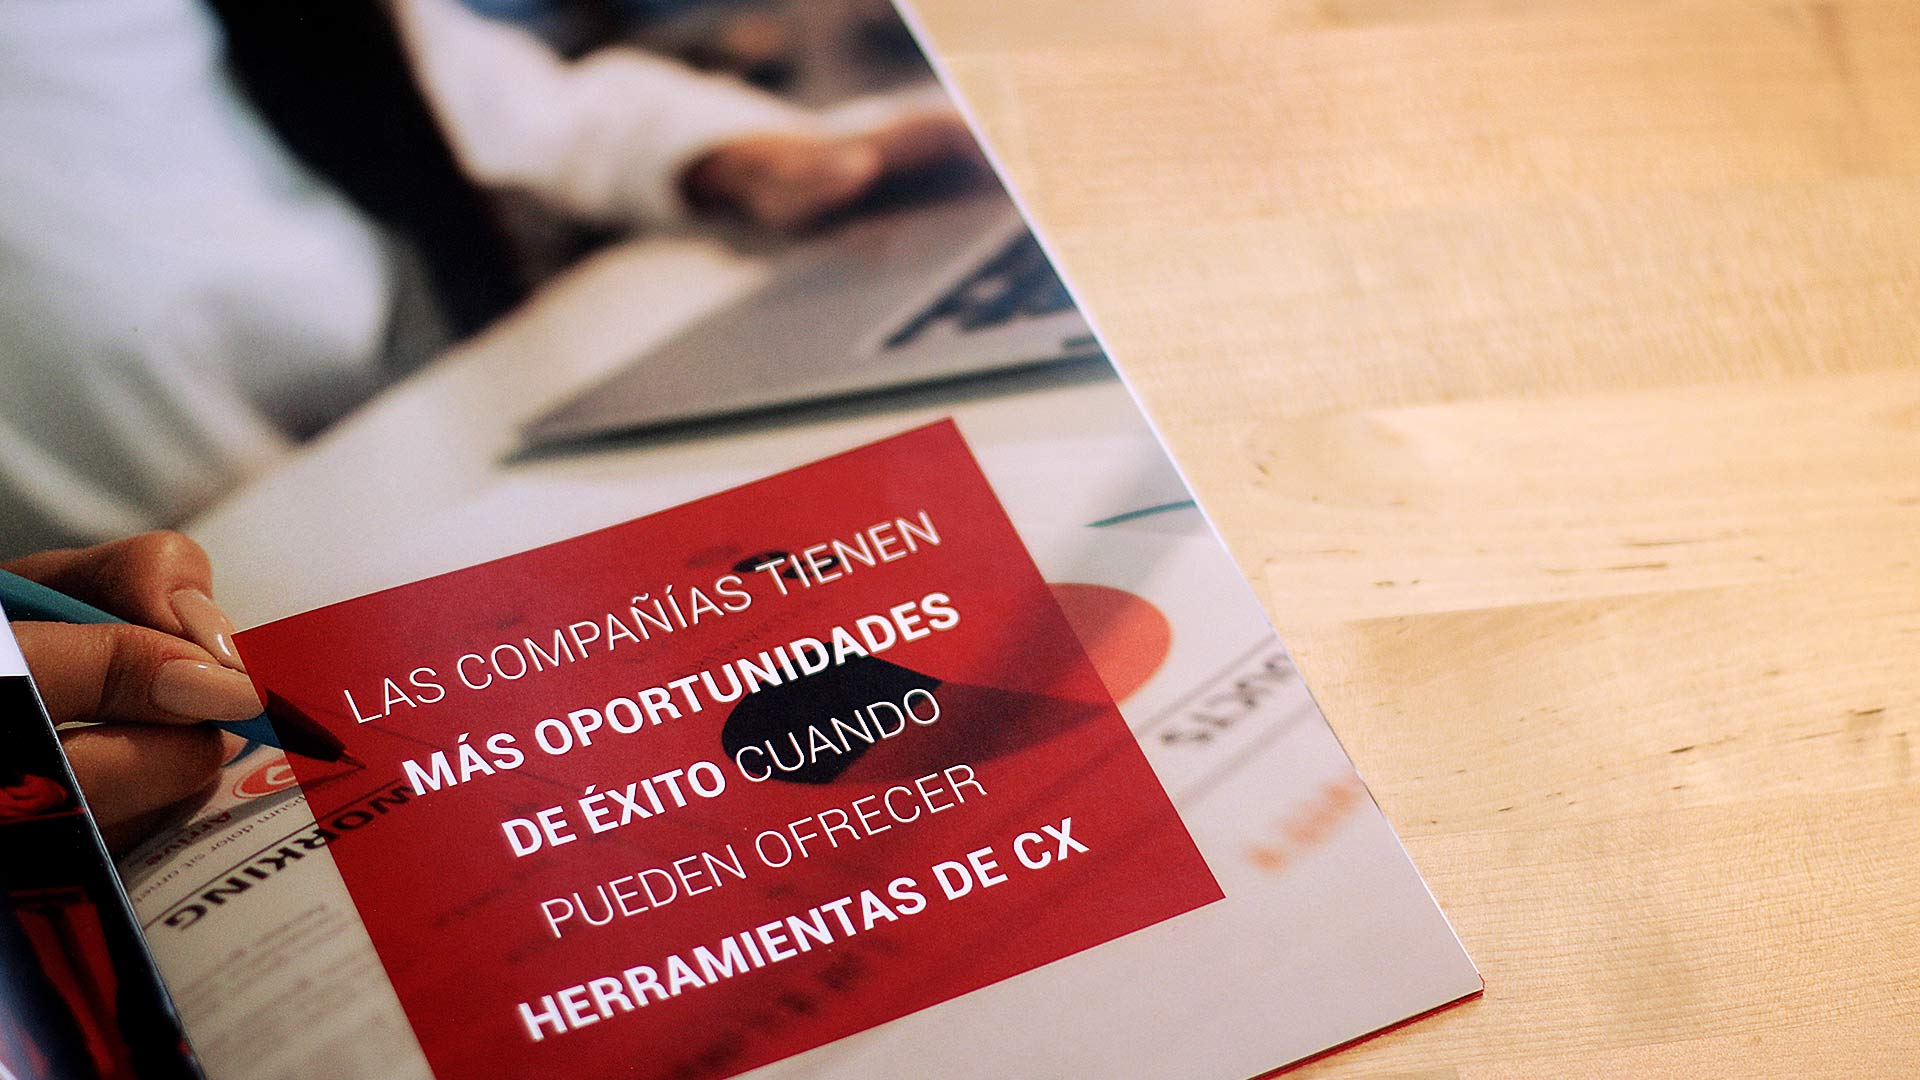 oracle-content-marketing-pilares-customer-experience-2017-20